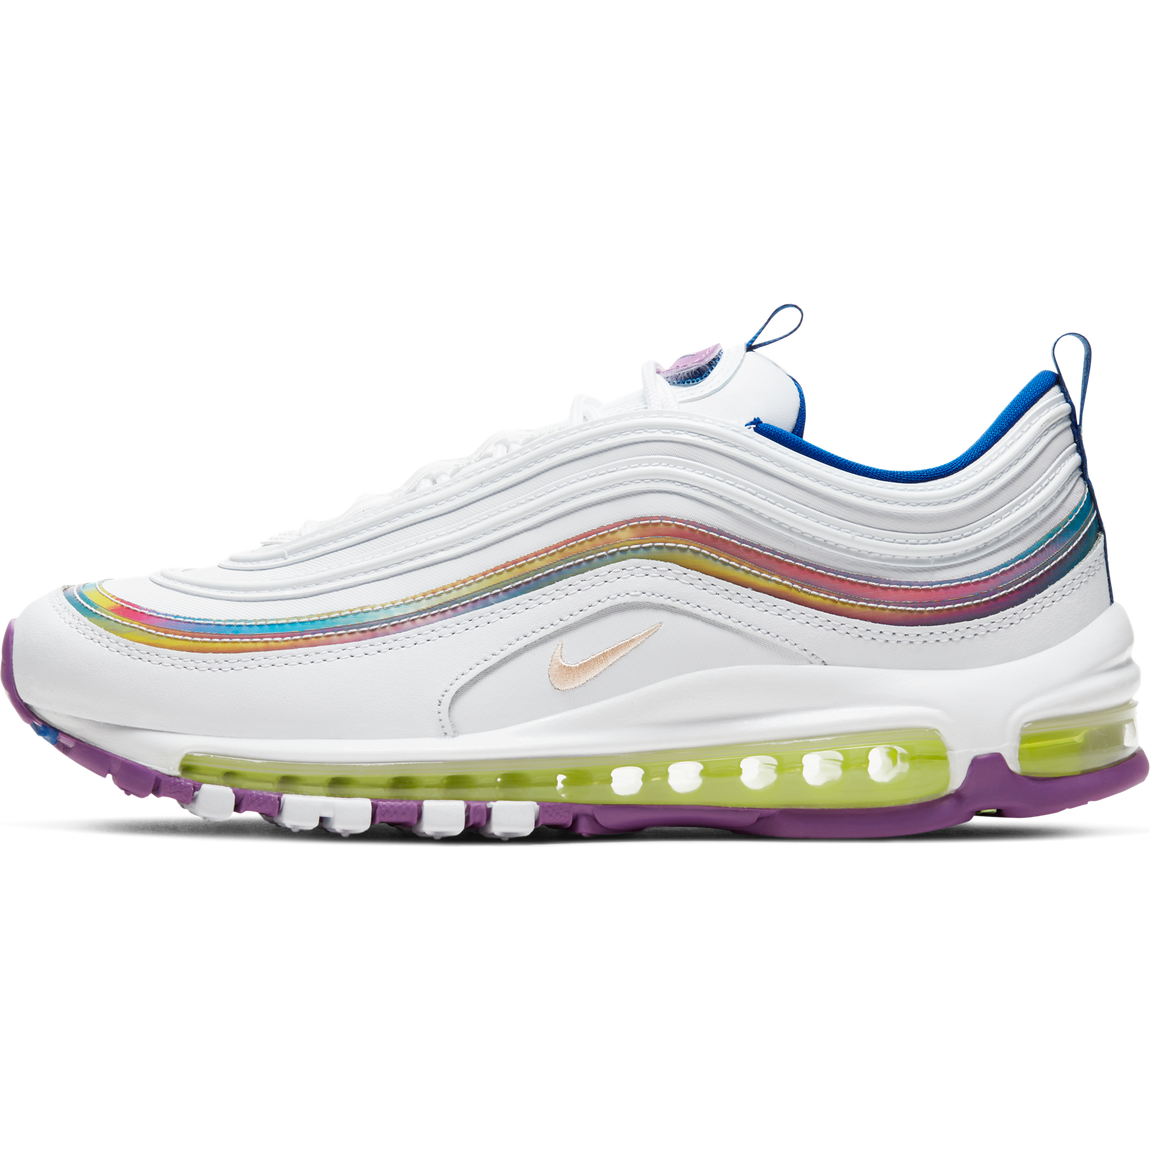 Nike Women's Air Max 97 SE (White/Washed Coral) - Nike Women's Air Max 97 SE (White/Washed Coral) -